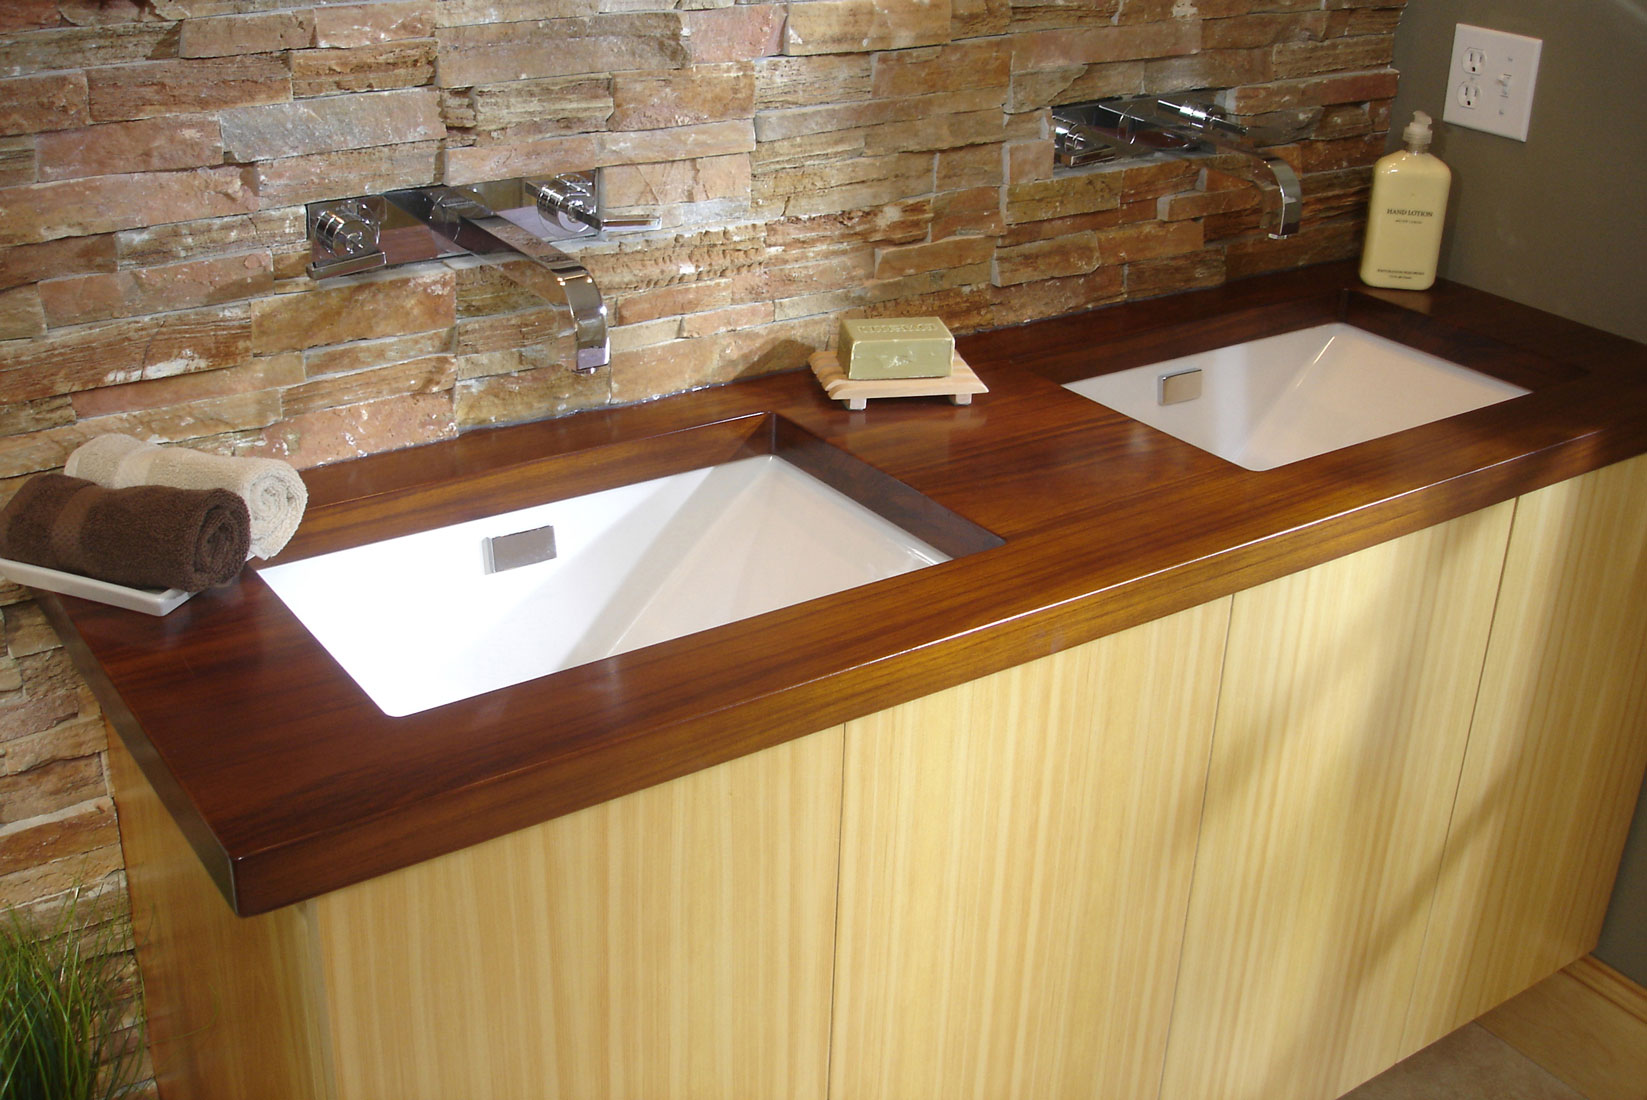 Vanity Wood Top : Raging river gallery of wood counter solutions